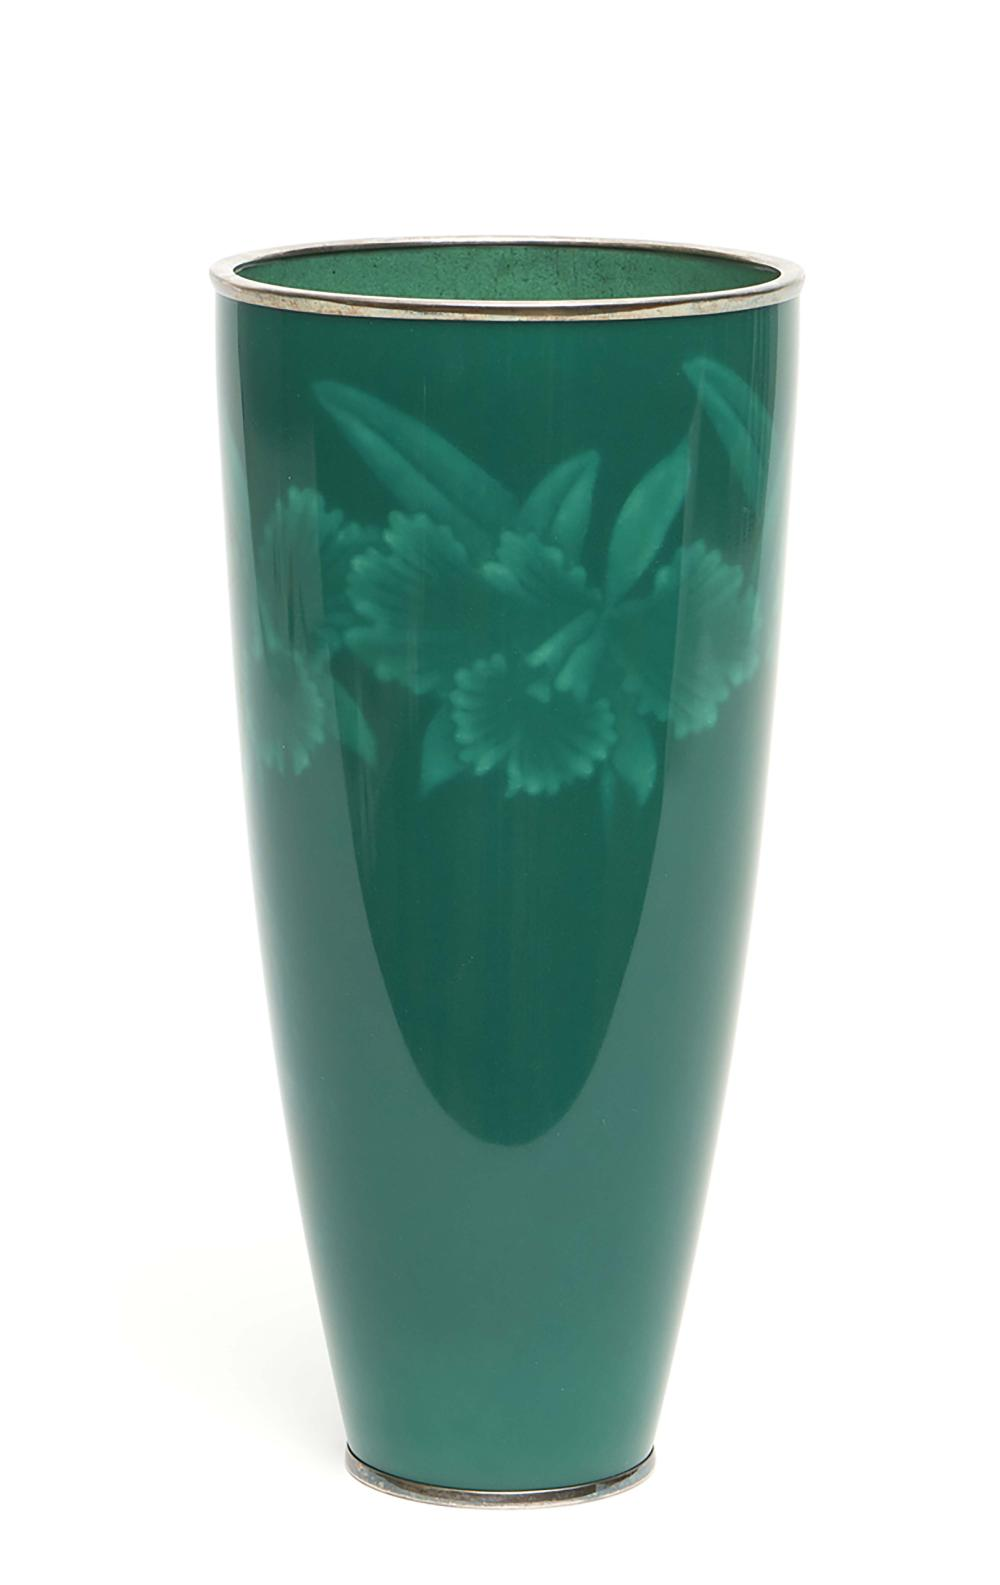 Dark green cloisonné vase broadening towards the top and decorated with a f